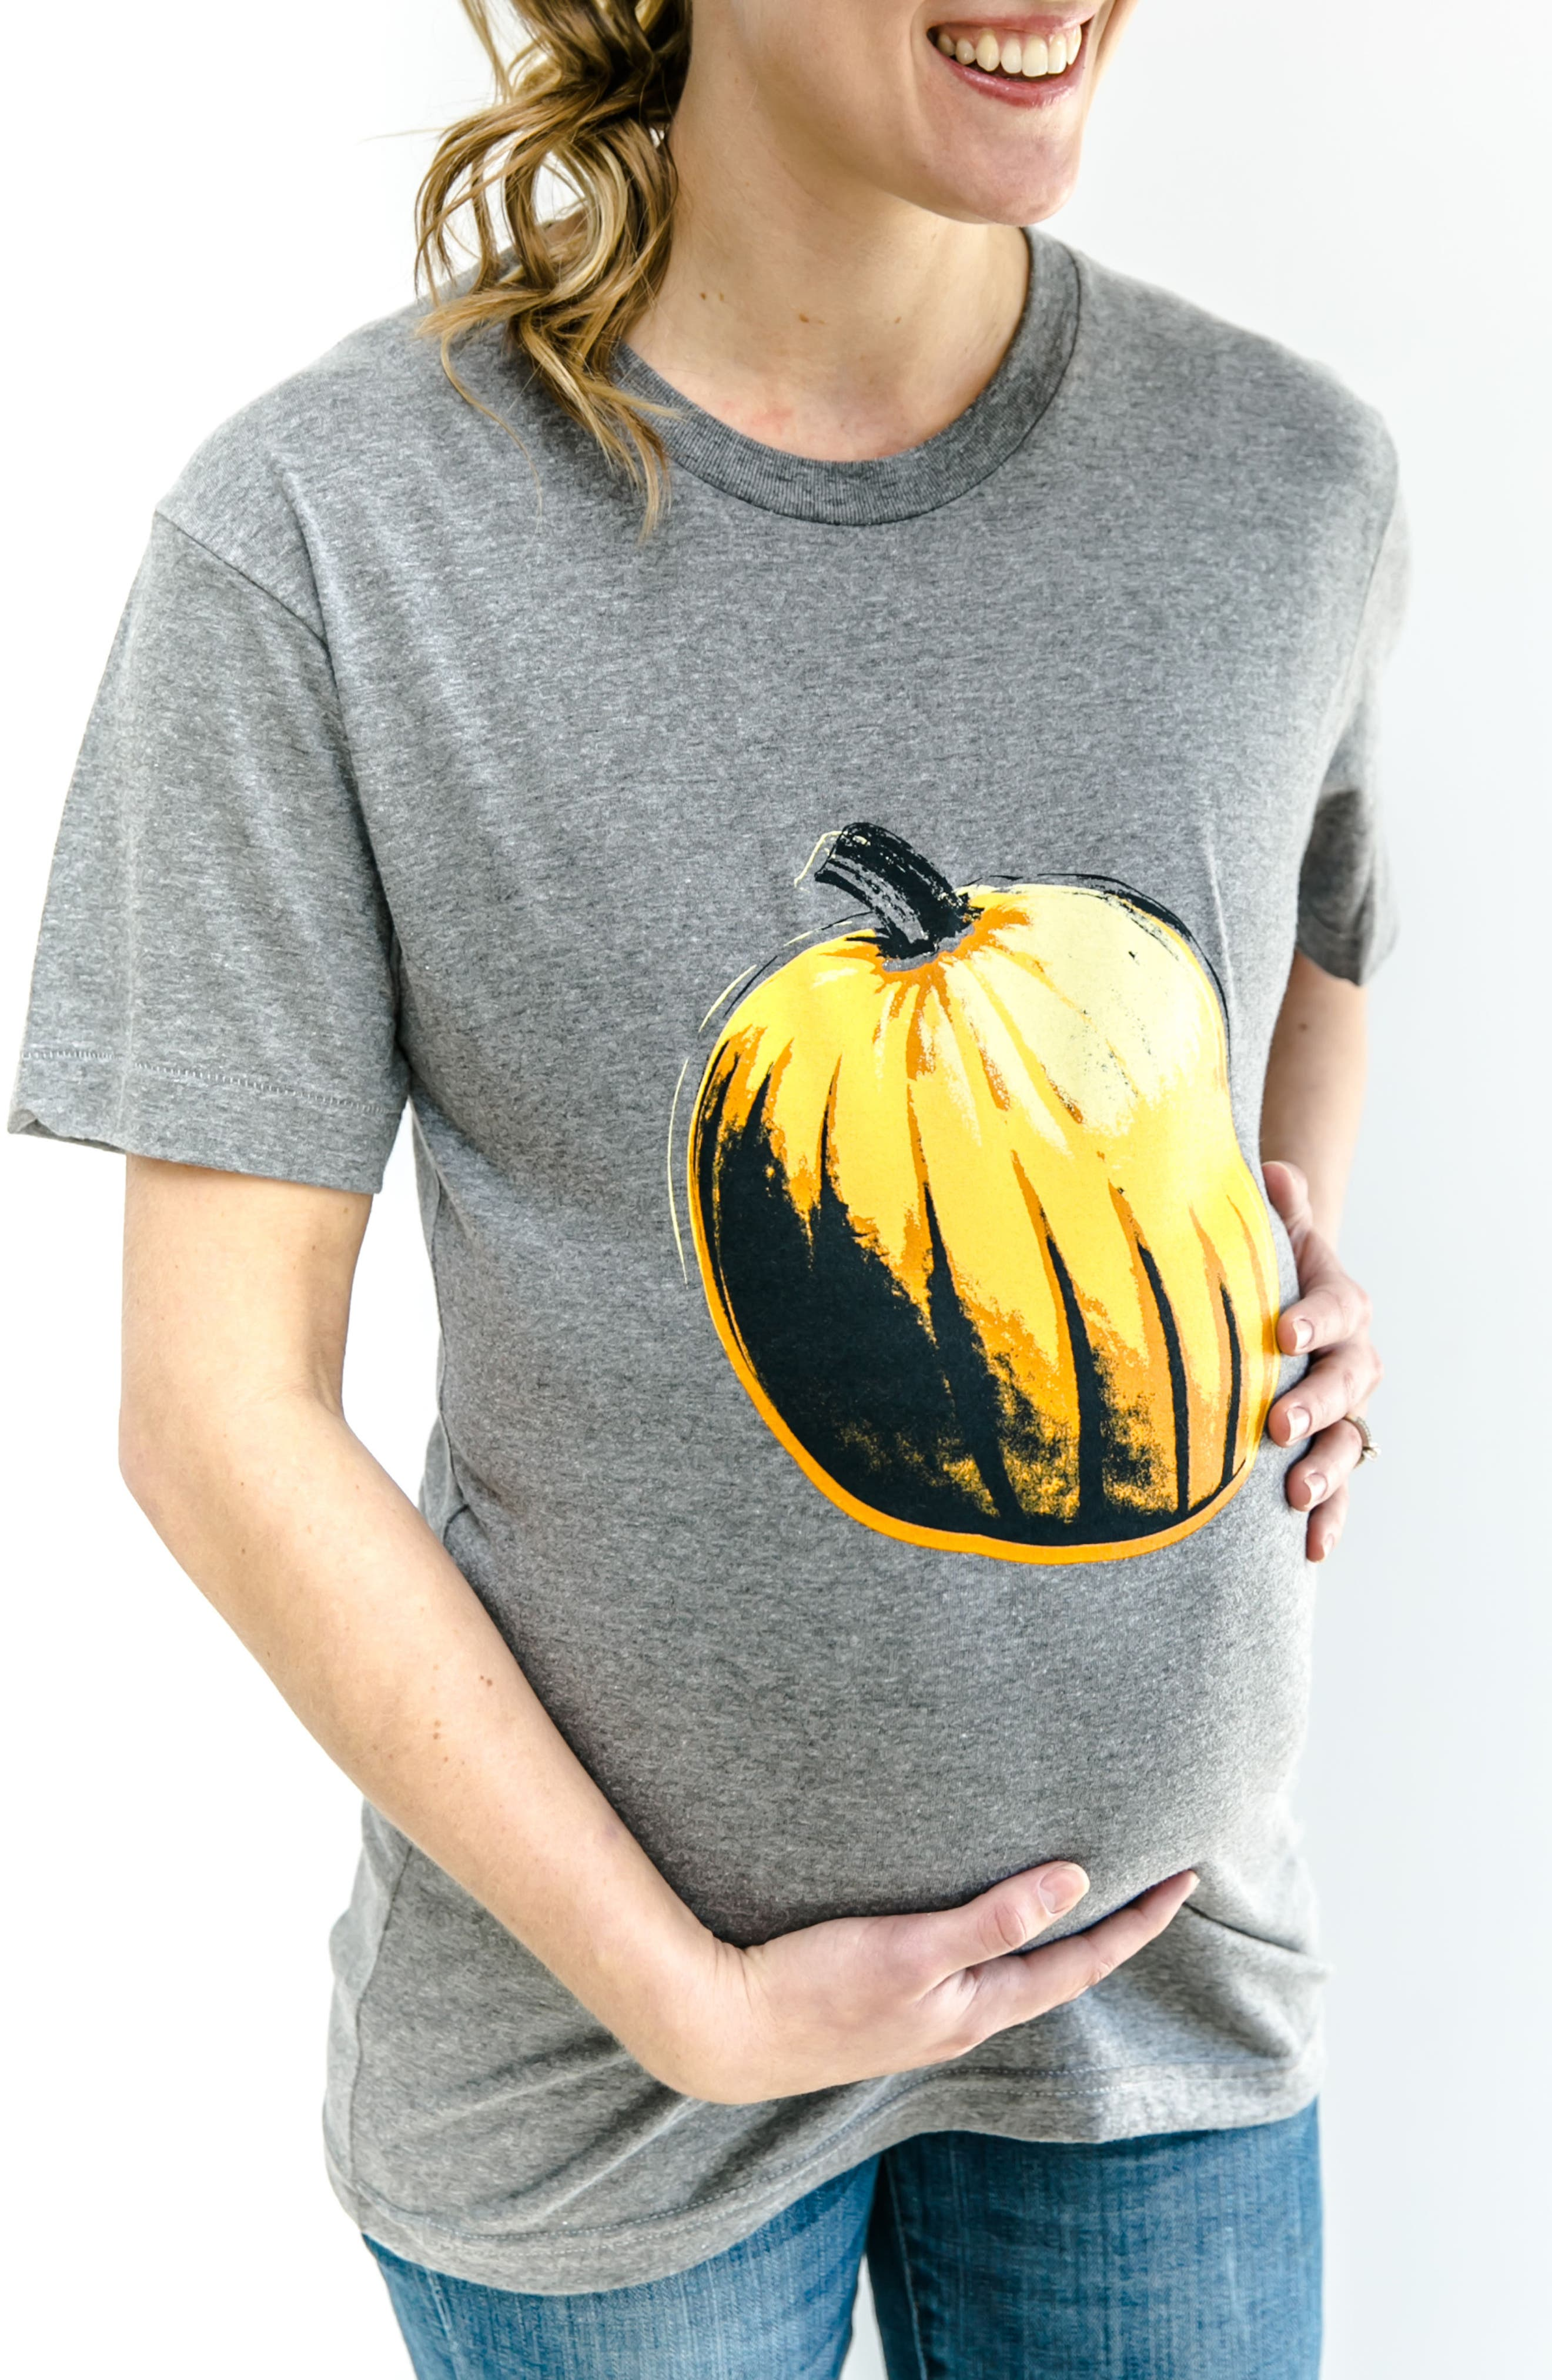 Third Trimester Pumpkin Maternity Tee,                             Alternate thumbnail 2, color,                             021